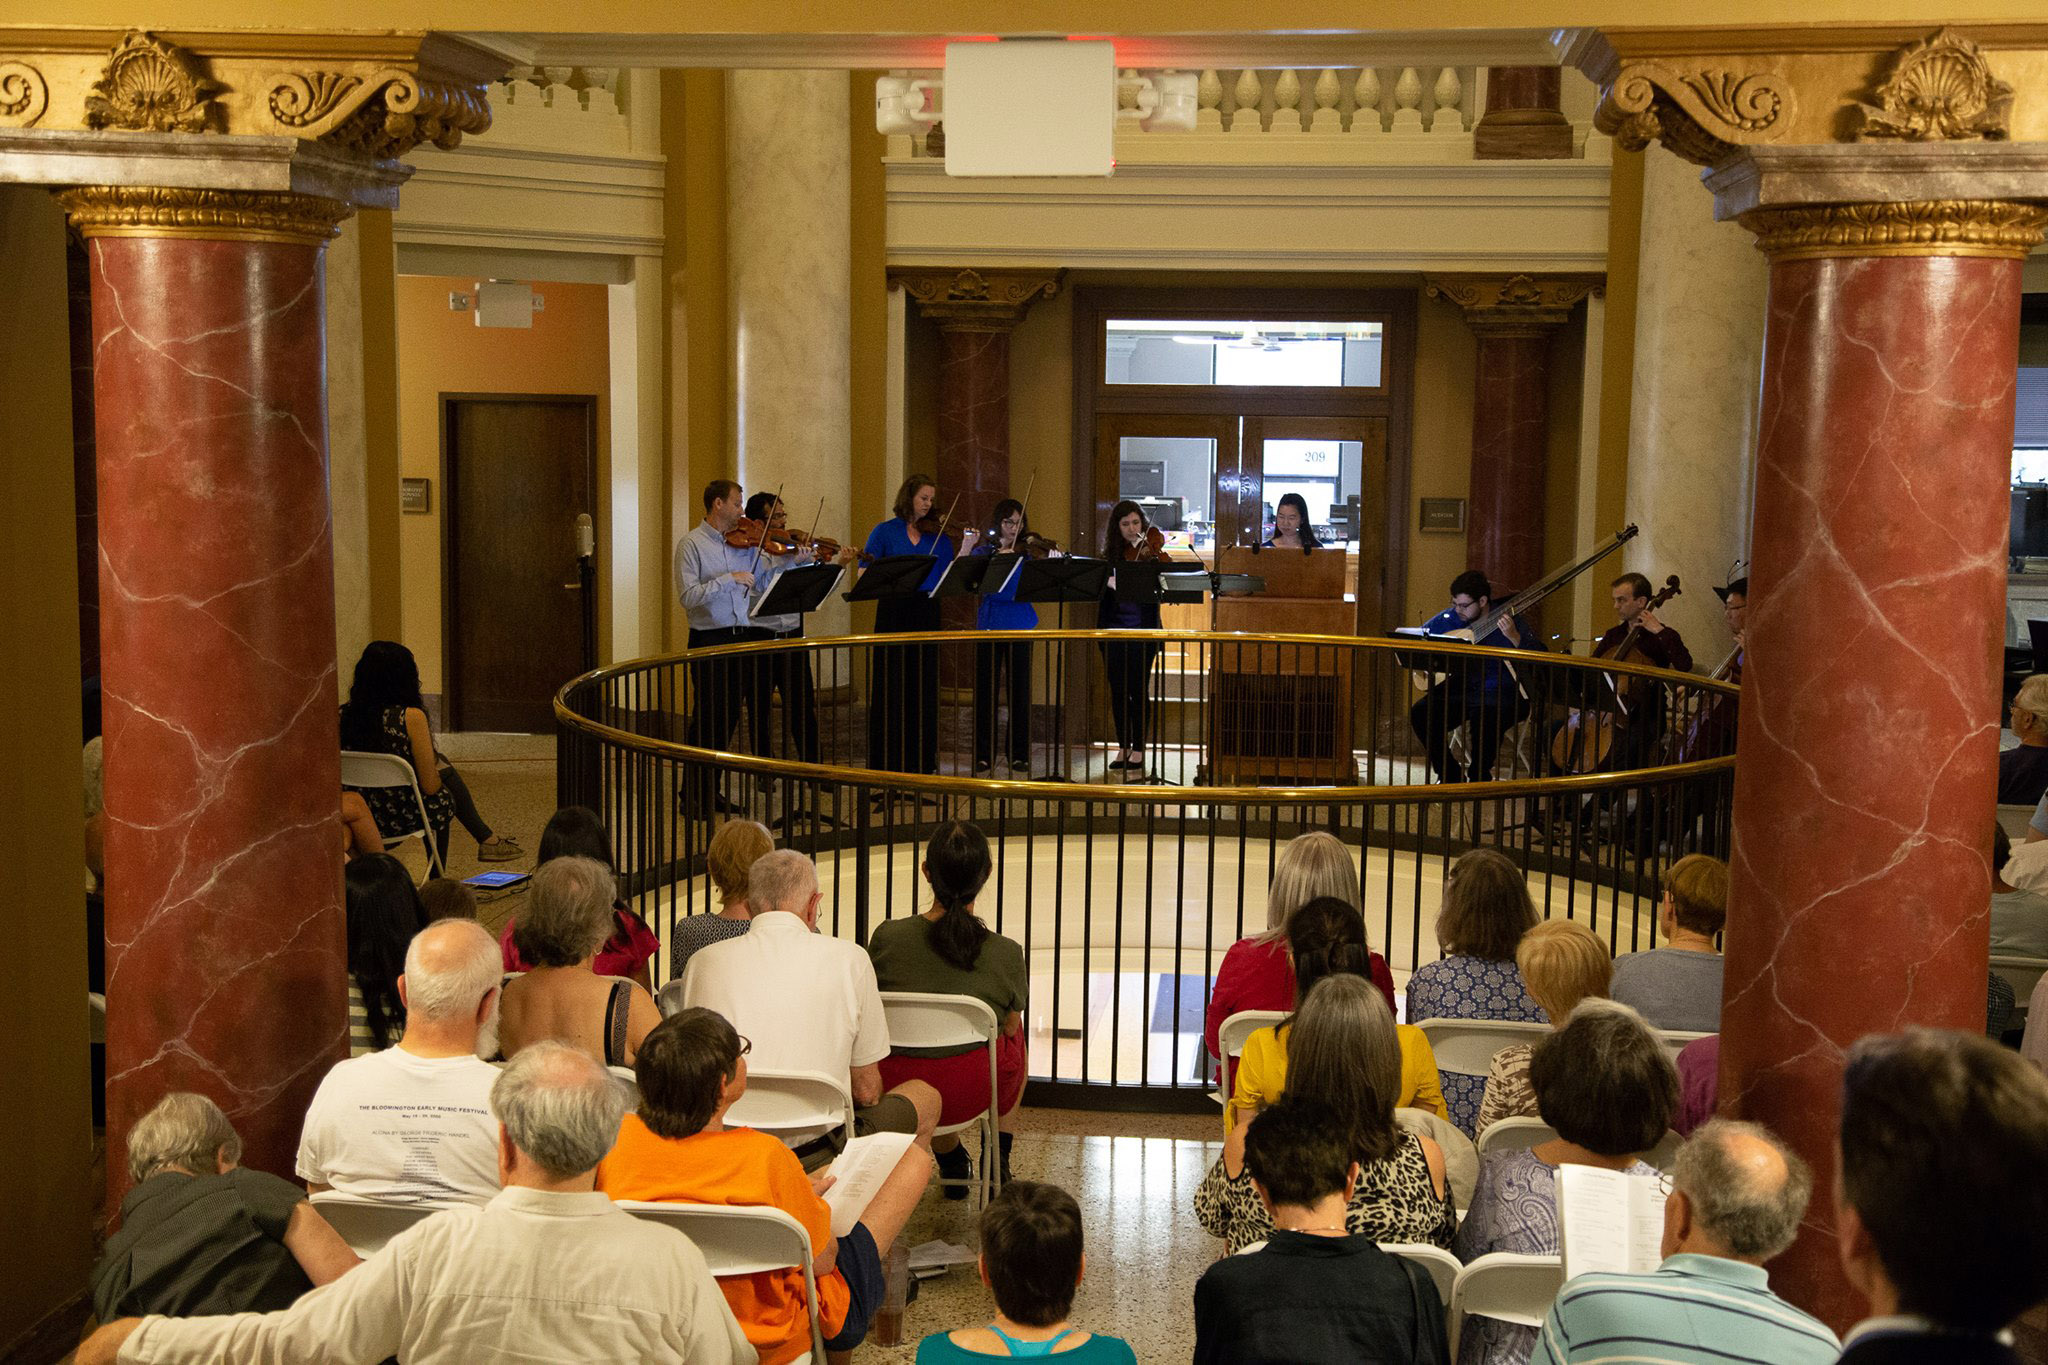 Members of the BLEMF Sacred Music Project perform at teh Bloomington Courthouse Rotunda (photo courtesy of BLEMF)